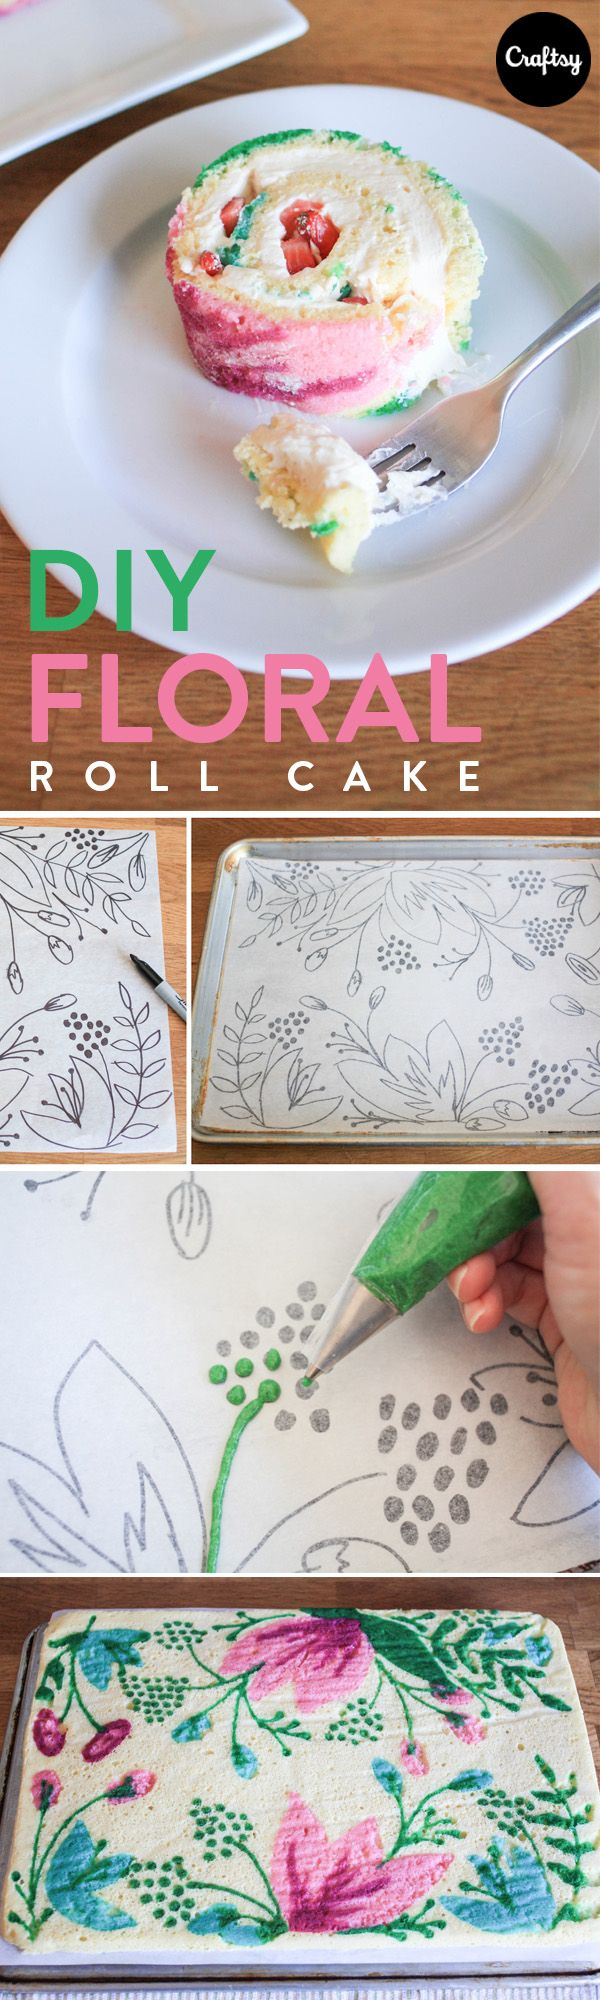 Simply Delicious Cake Design: FREE Patterned Roll Cake Recipe + Tutorial